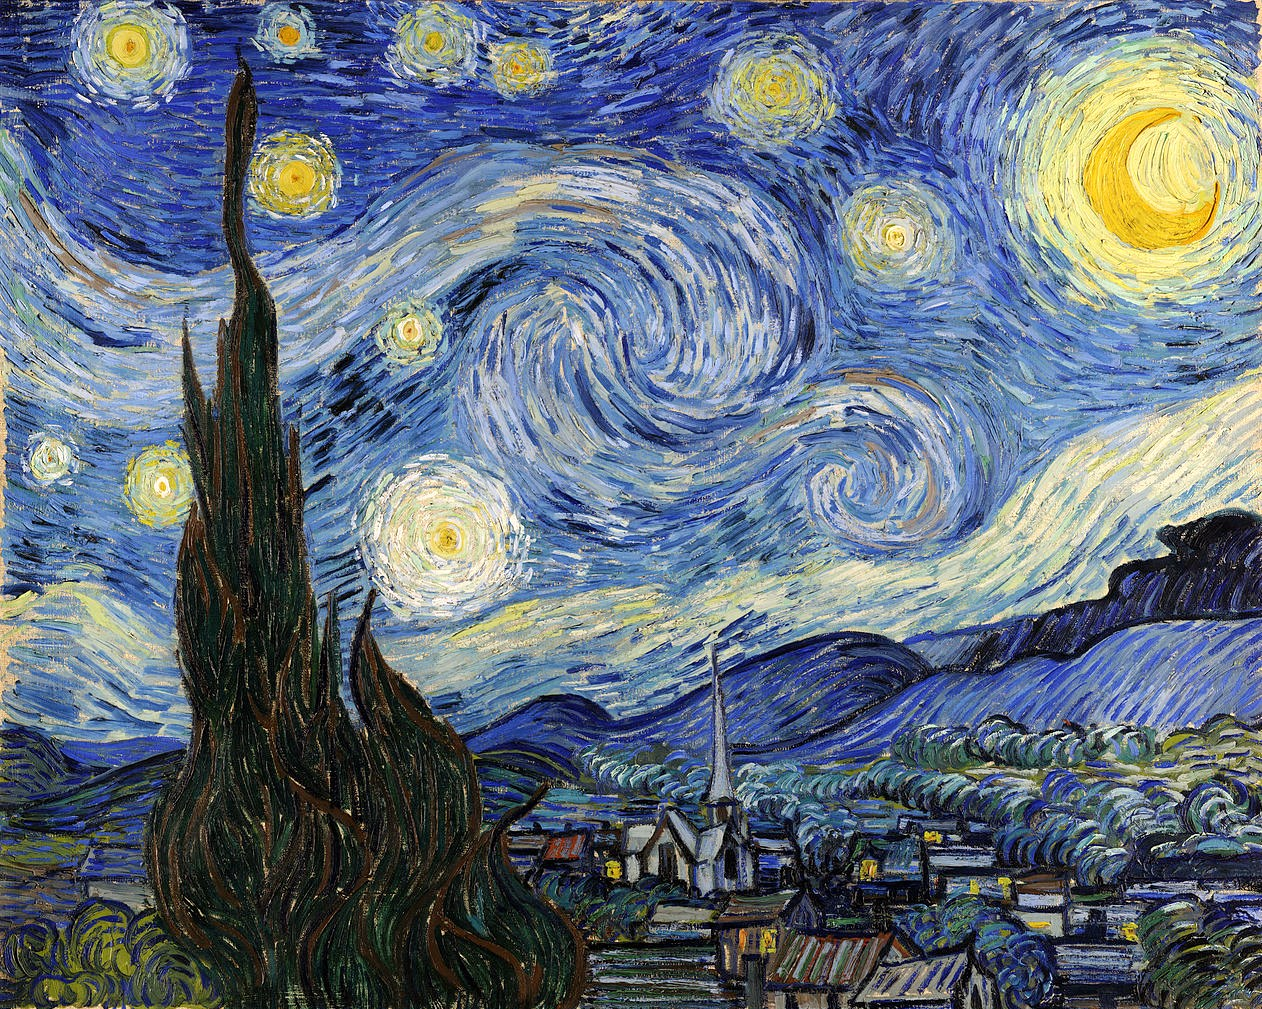 Post imspressionist painter Vincent van Gogh's The Starry Night, c.1889.